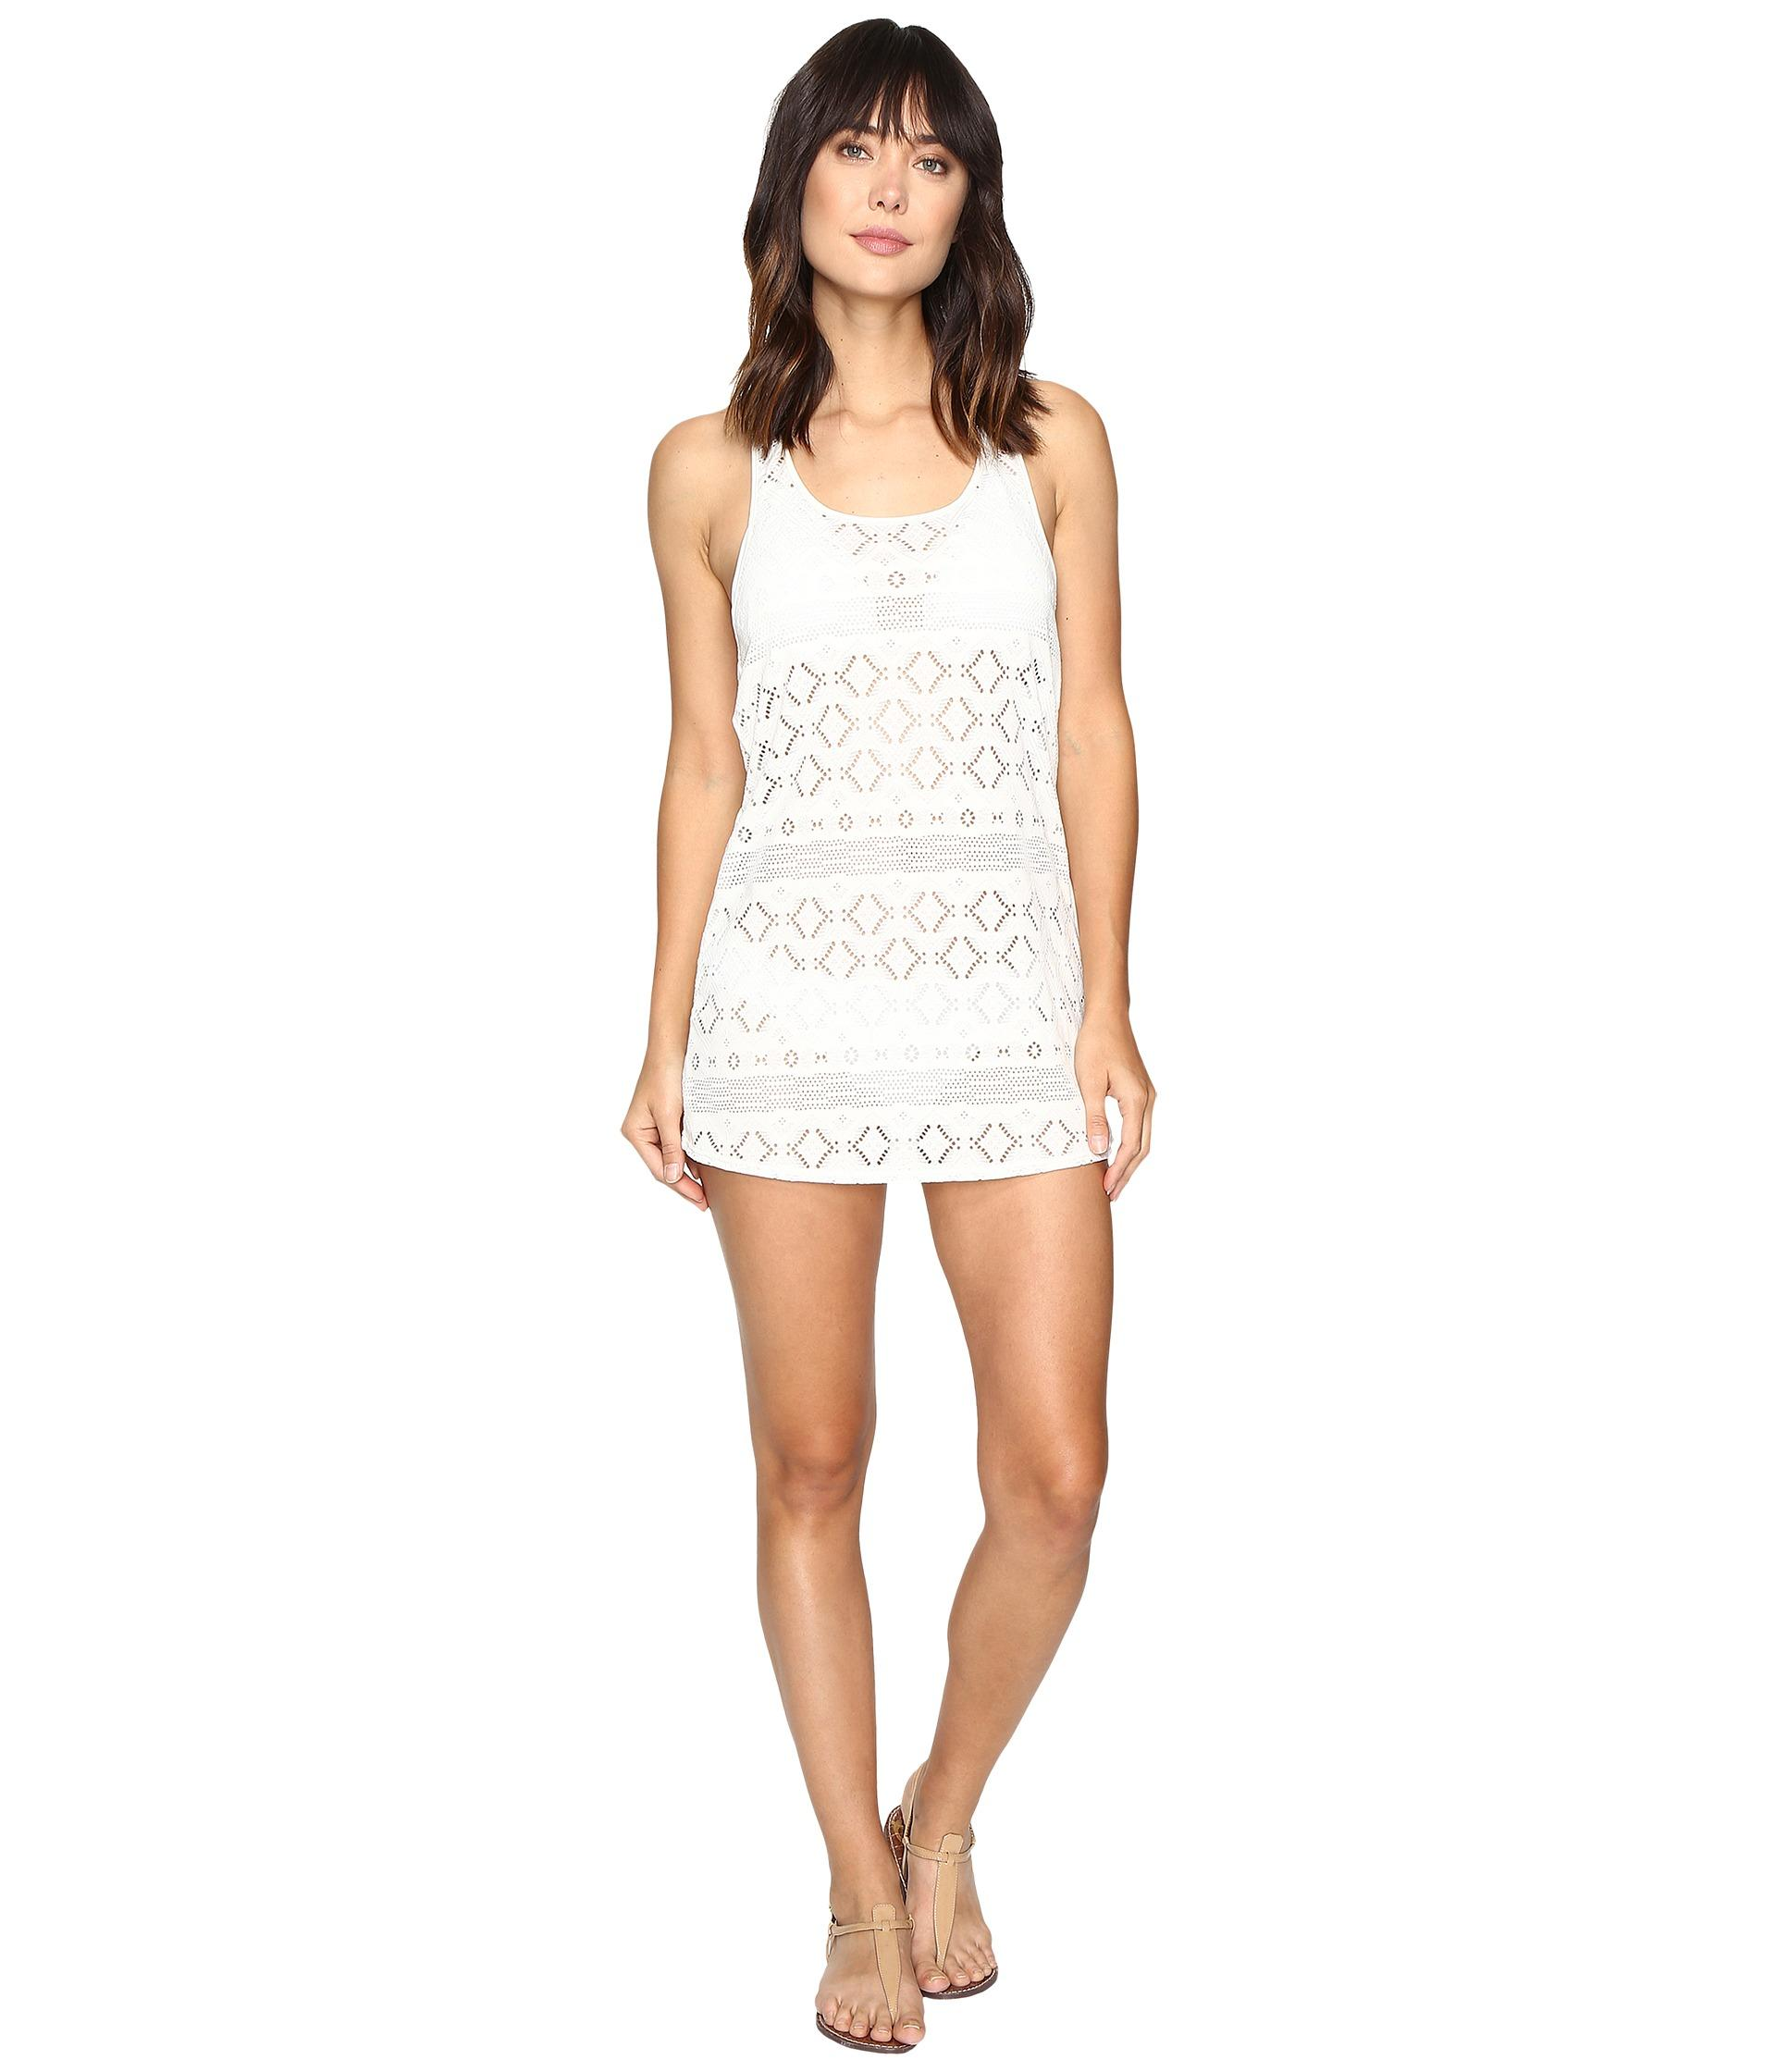 Roxy Crochet Sporty Cover-up in Black Lyst